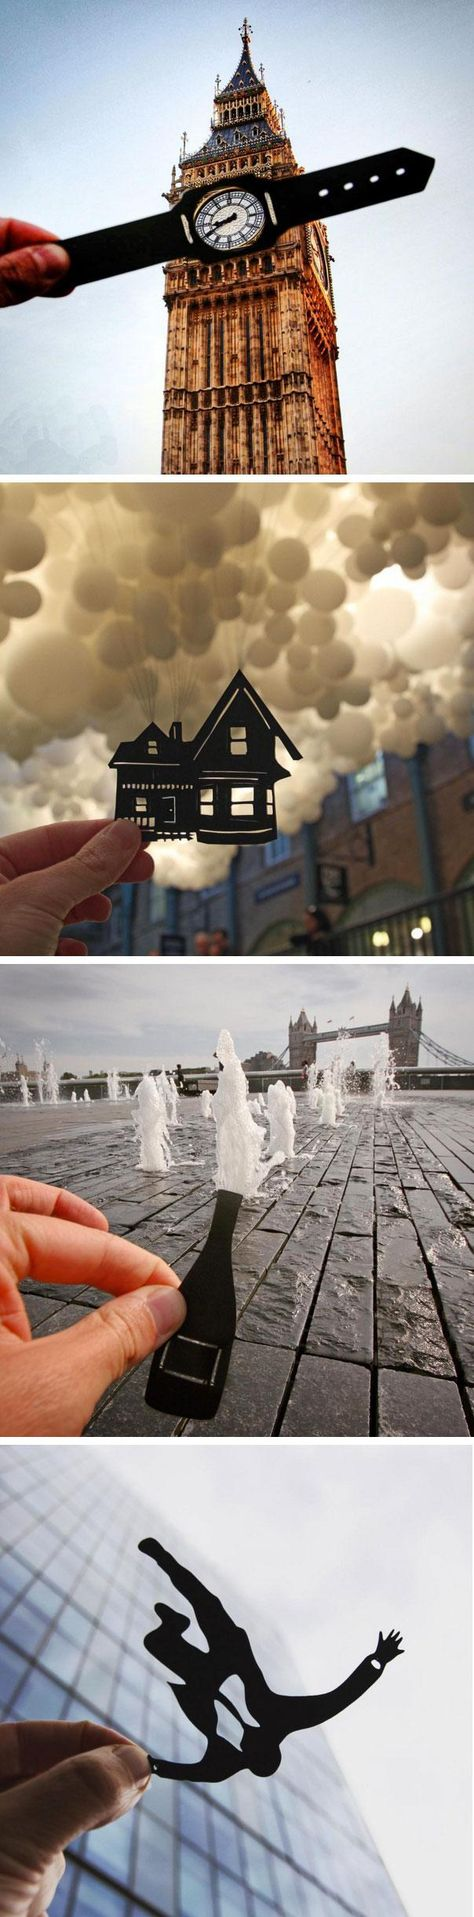 Going by the name paperboyo, Instagrammer Rich McCor has developed a unique style of photography that uses paper cutouts to interact with European landmarks